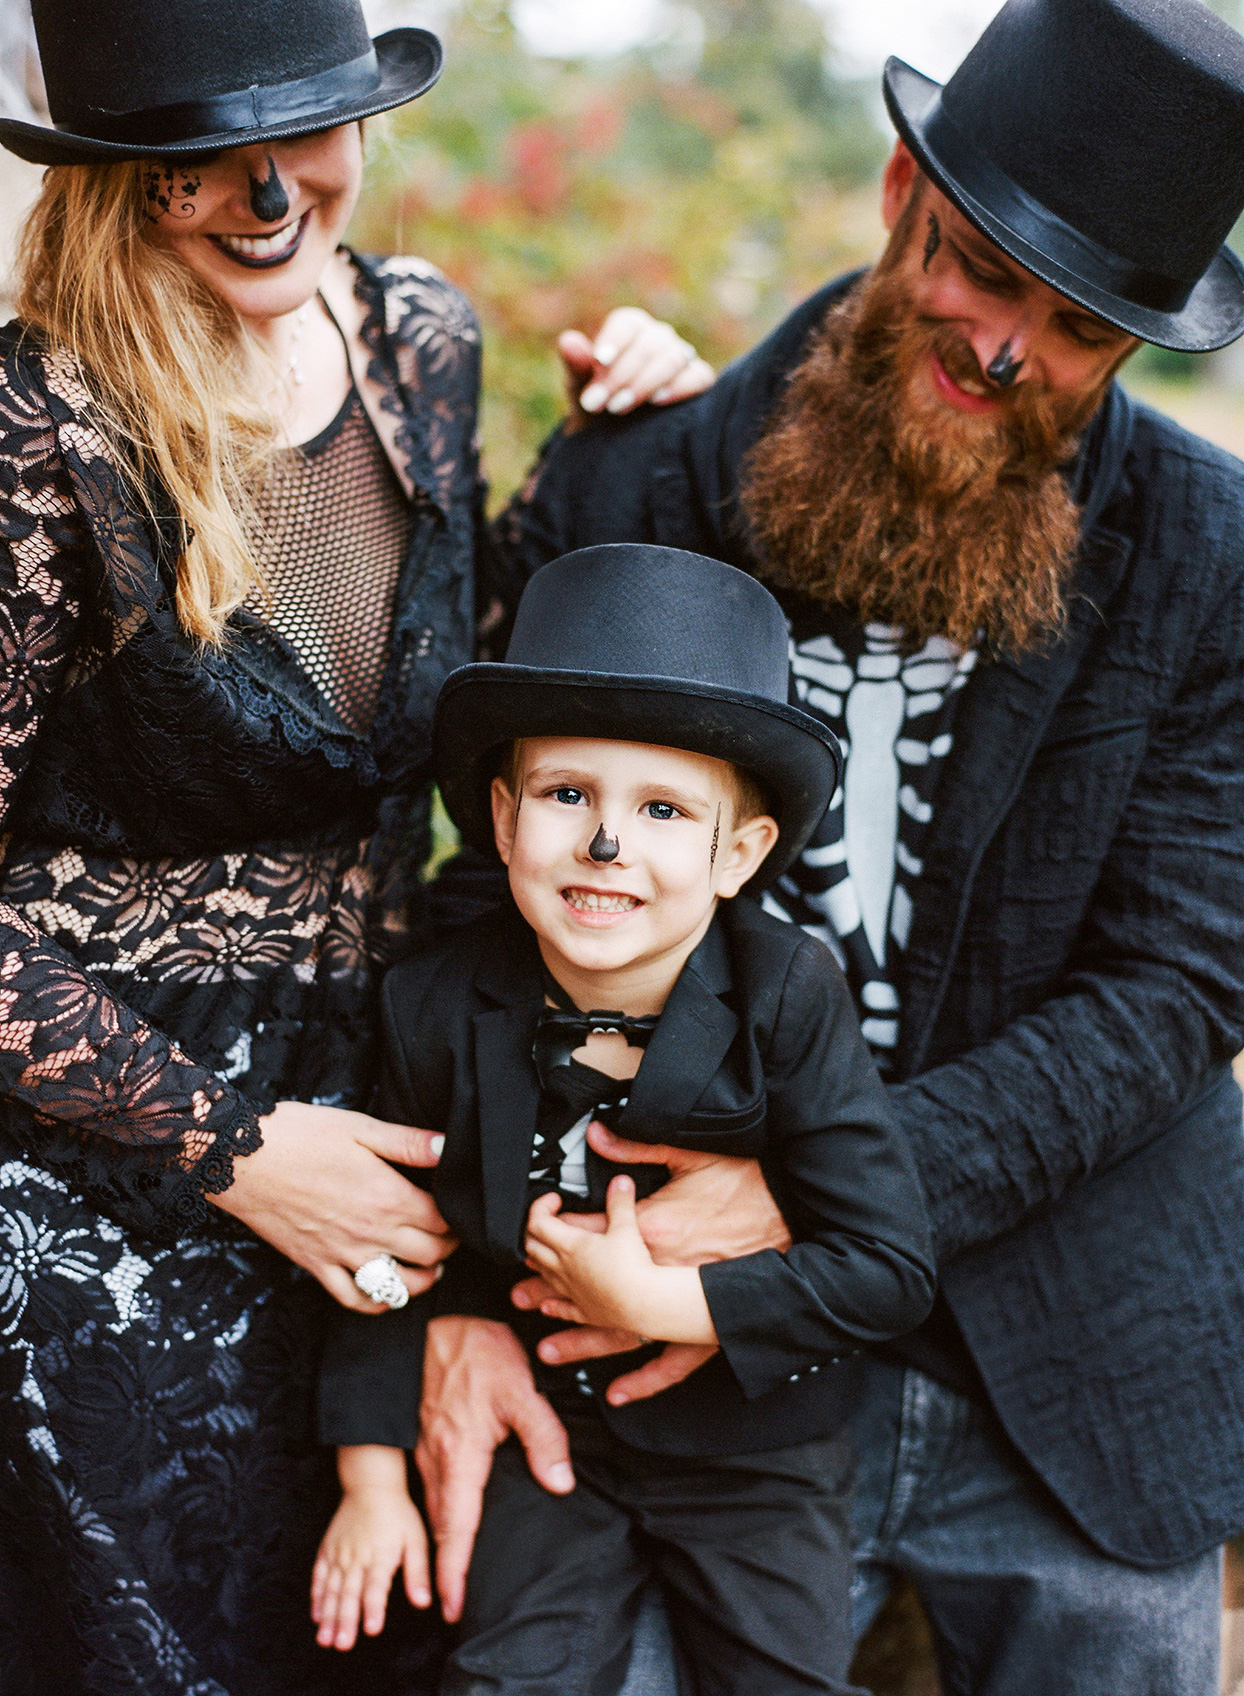 family in halloween masquerade costumes